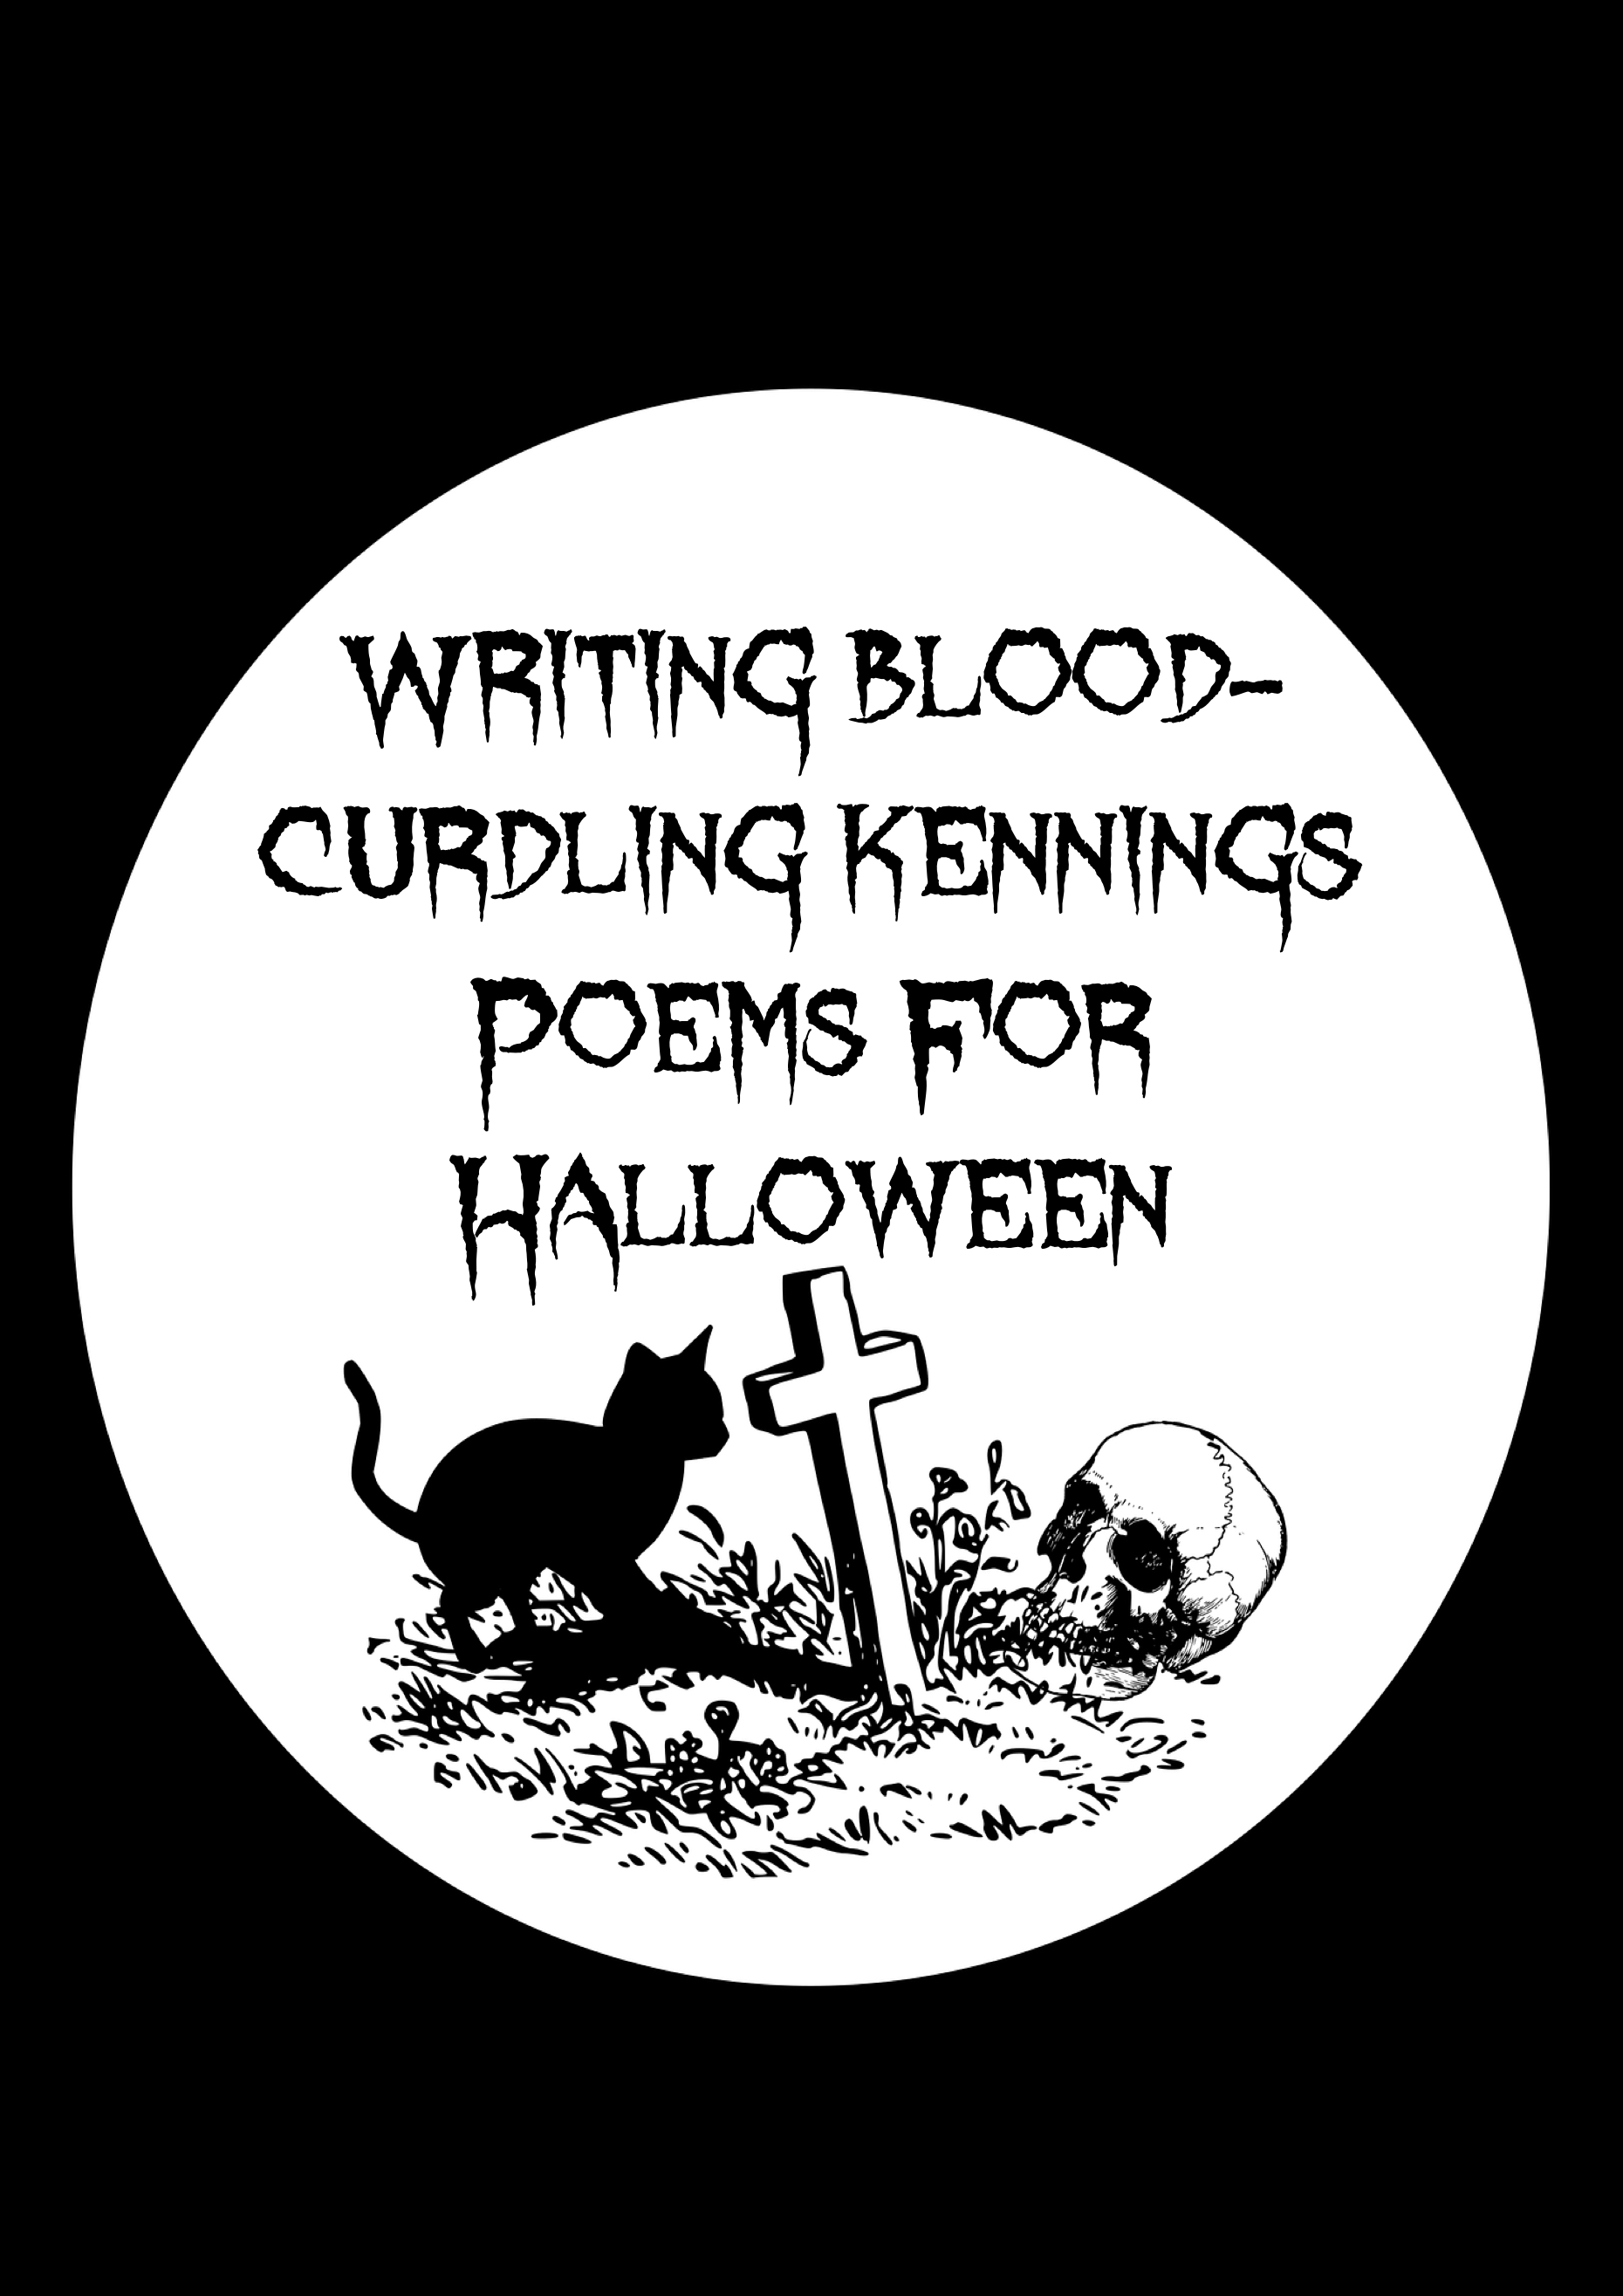 Writing Blood-Curdling Kennings Poems for Halloween